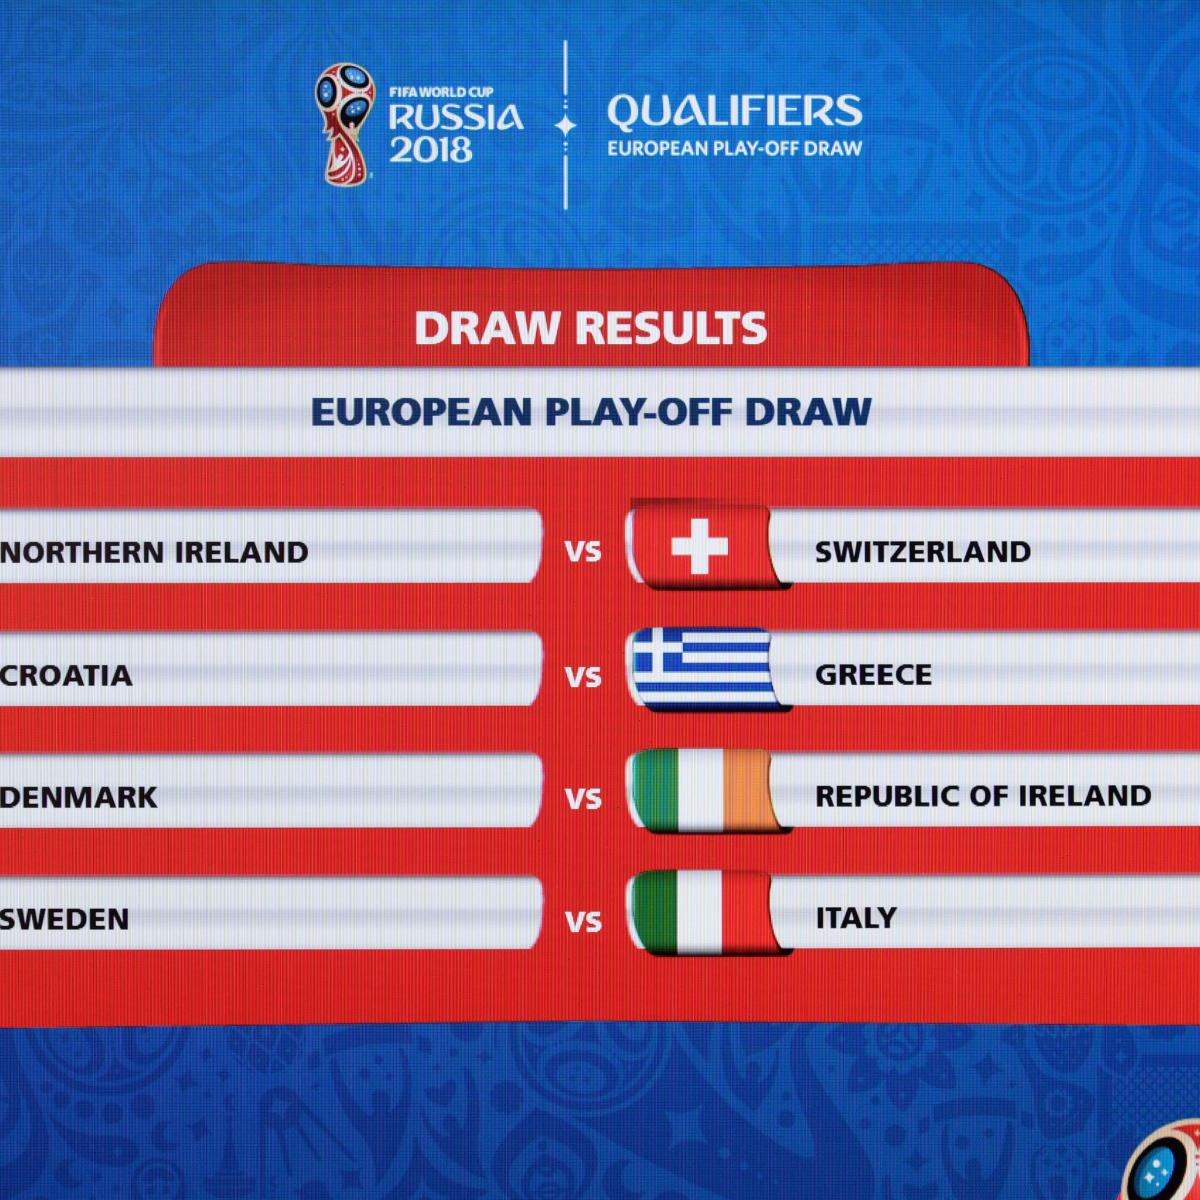 2018 World Cup Playoff Draw Italy Vs Sweden Highlights European Qualifiers Bleacher Report Latest News S And